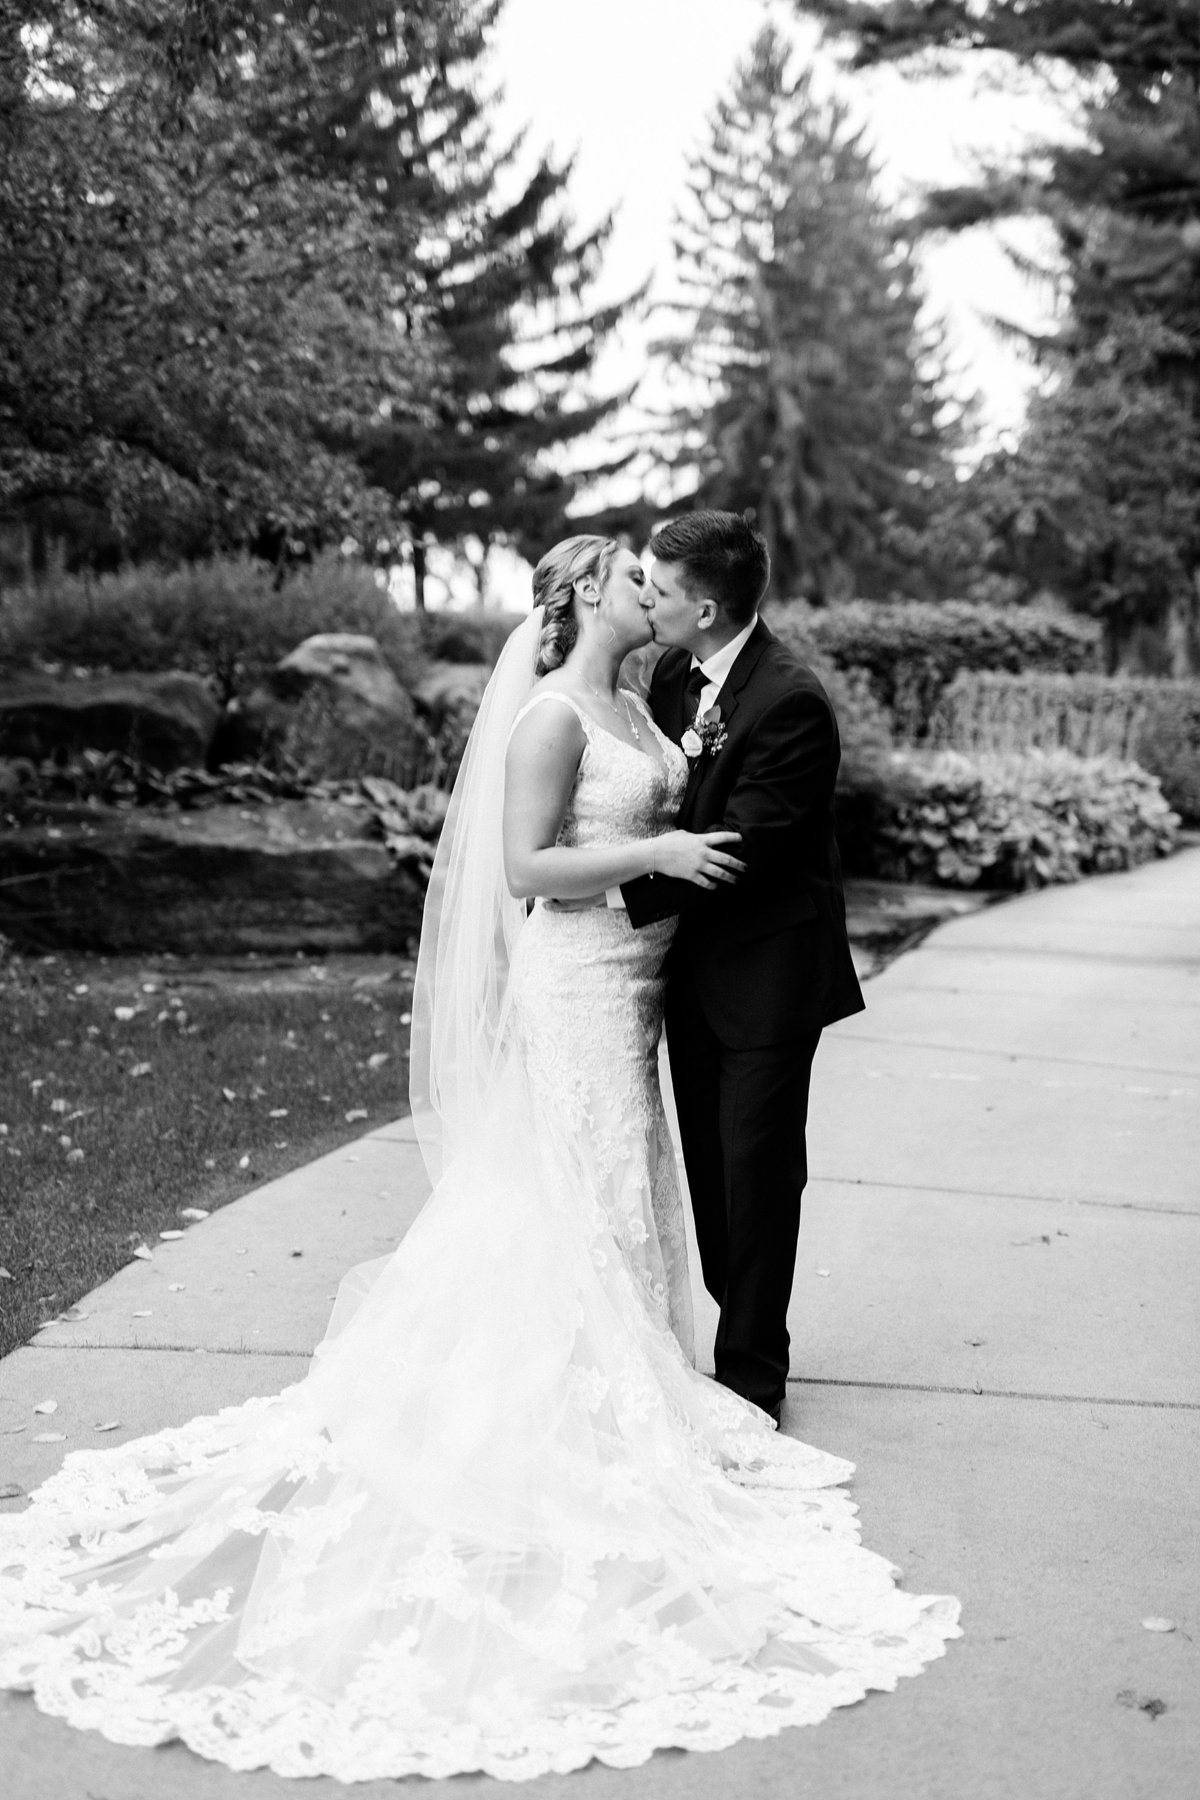 Jordan-Ben-Pine-Knob-Mansion-Clarkston-Michigan-Wedding-Breanne-Rochelle-Photography72